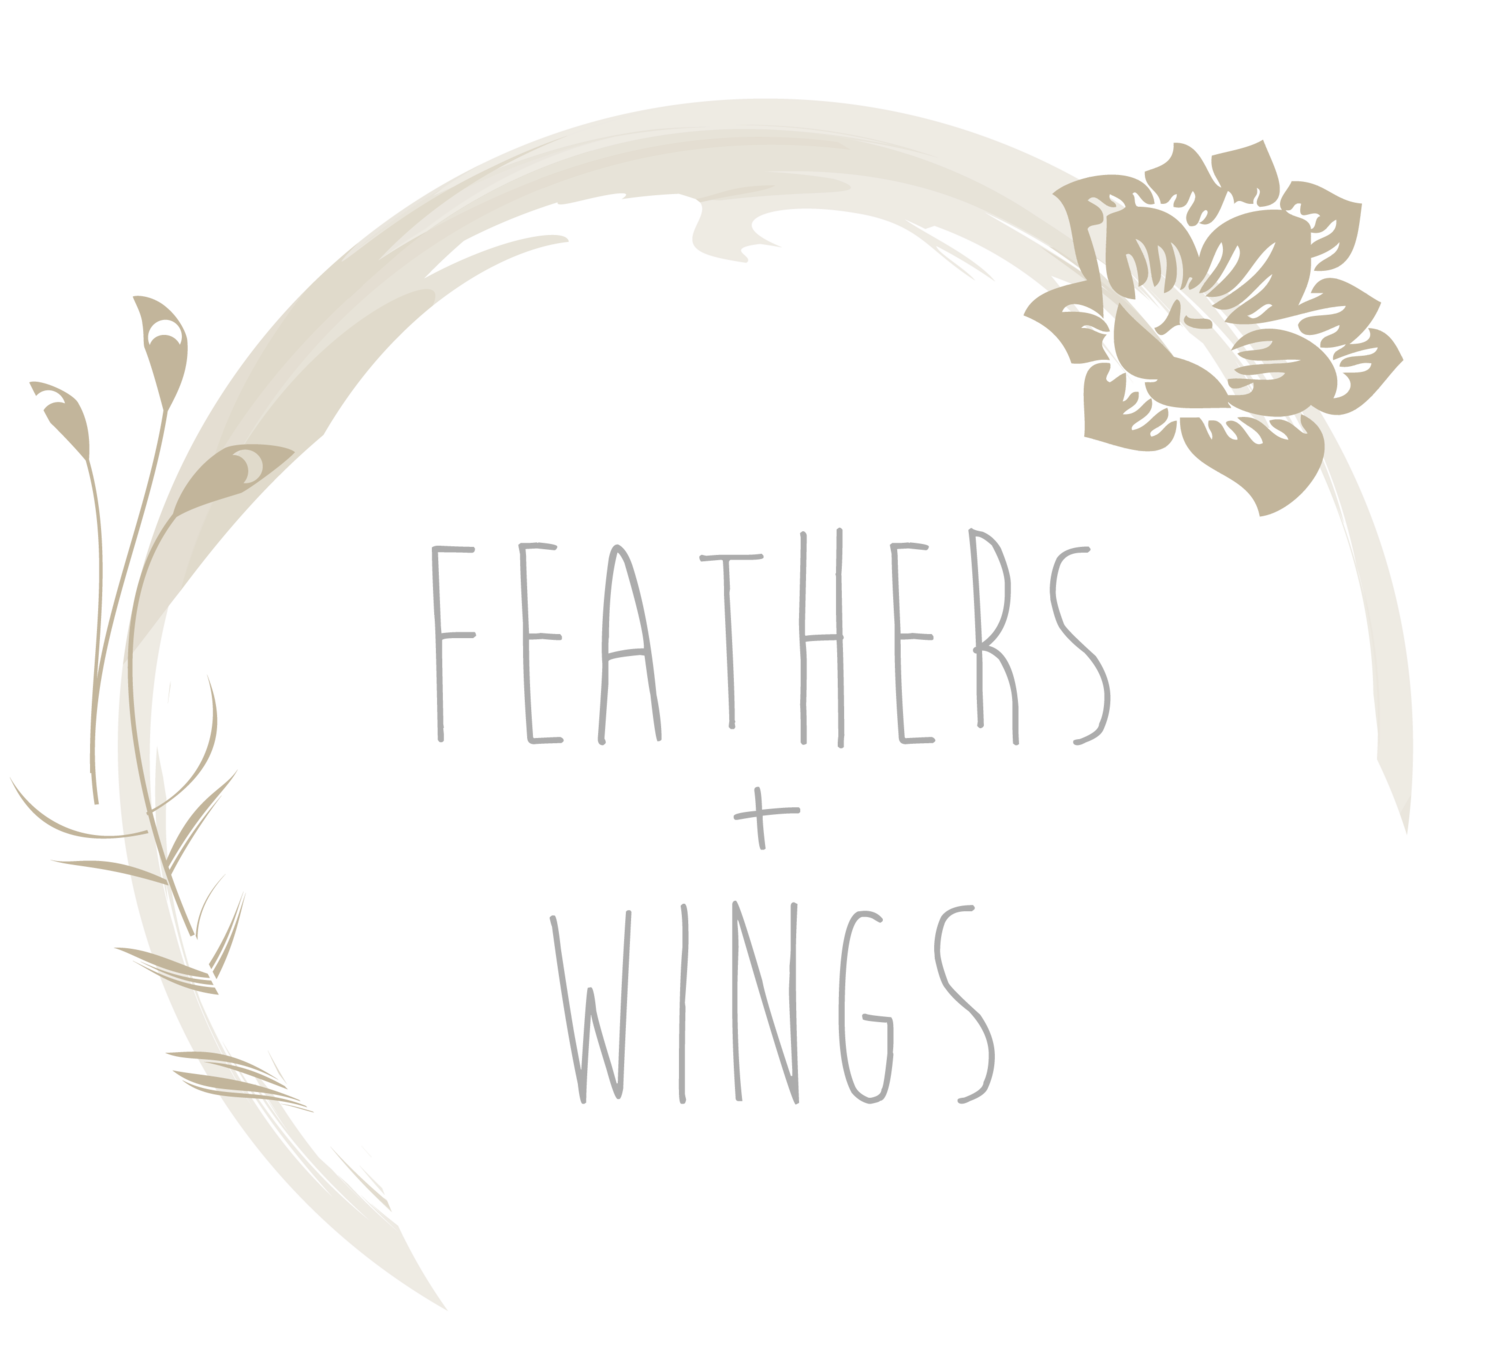 Feathers + Wings